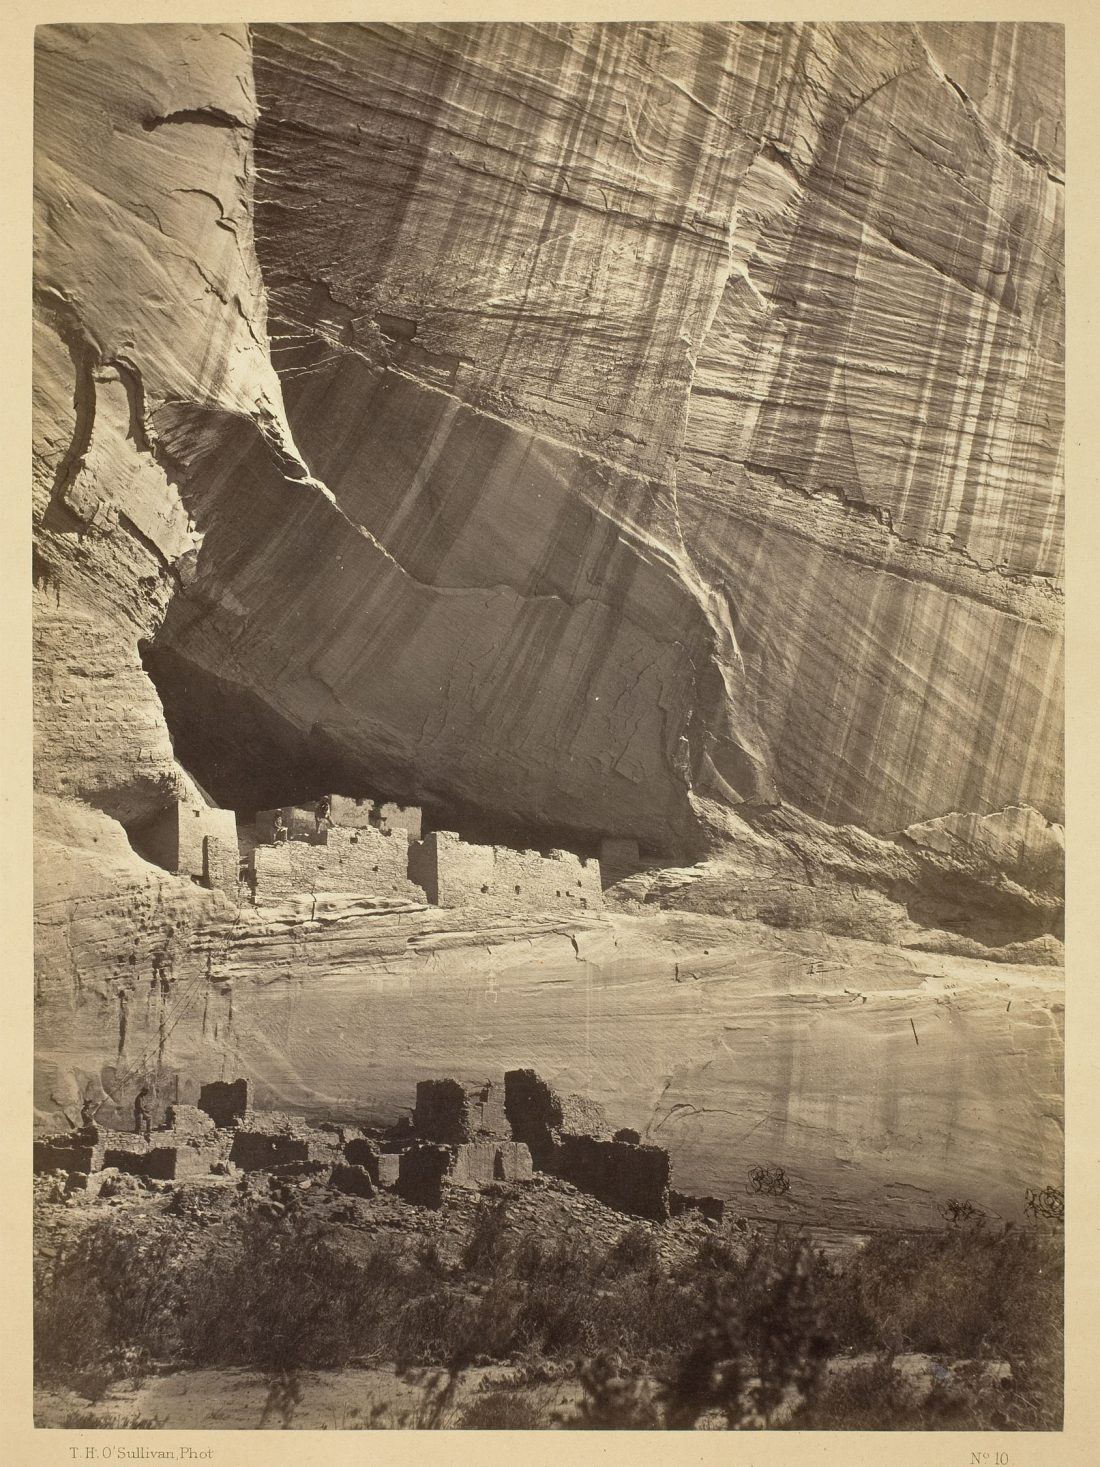 Timothy O'Sullivan, Ancient Ruins in the Cañon de Chelle, N.M. In a niche 50 feet above present Cañon bed., 1873